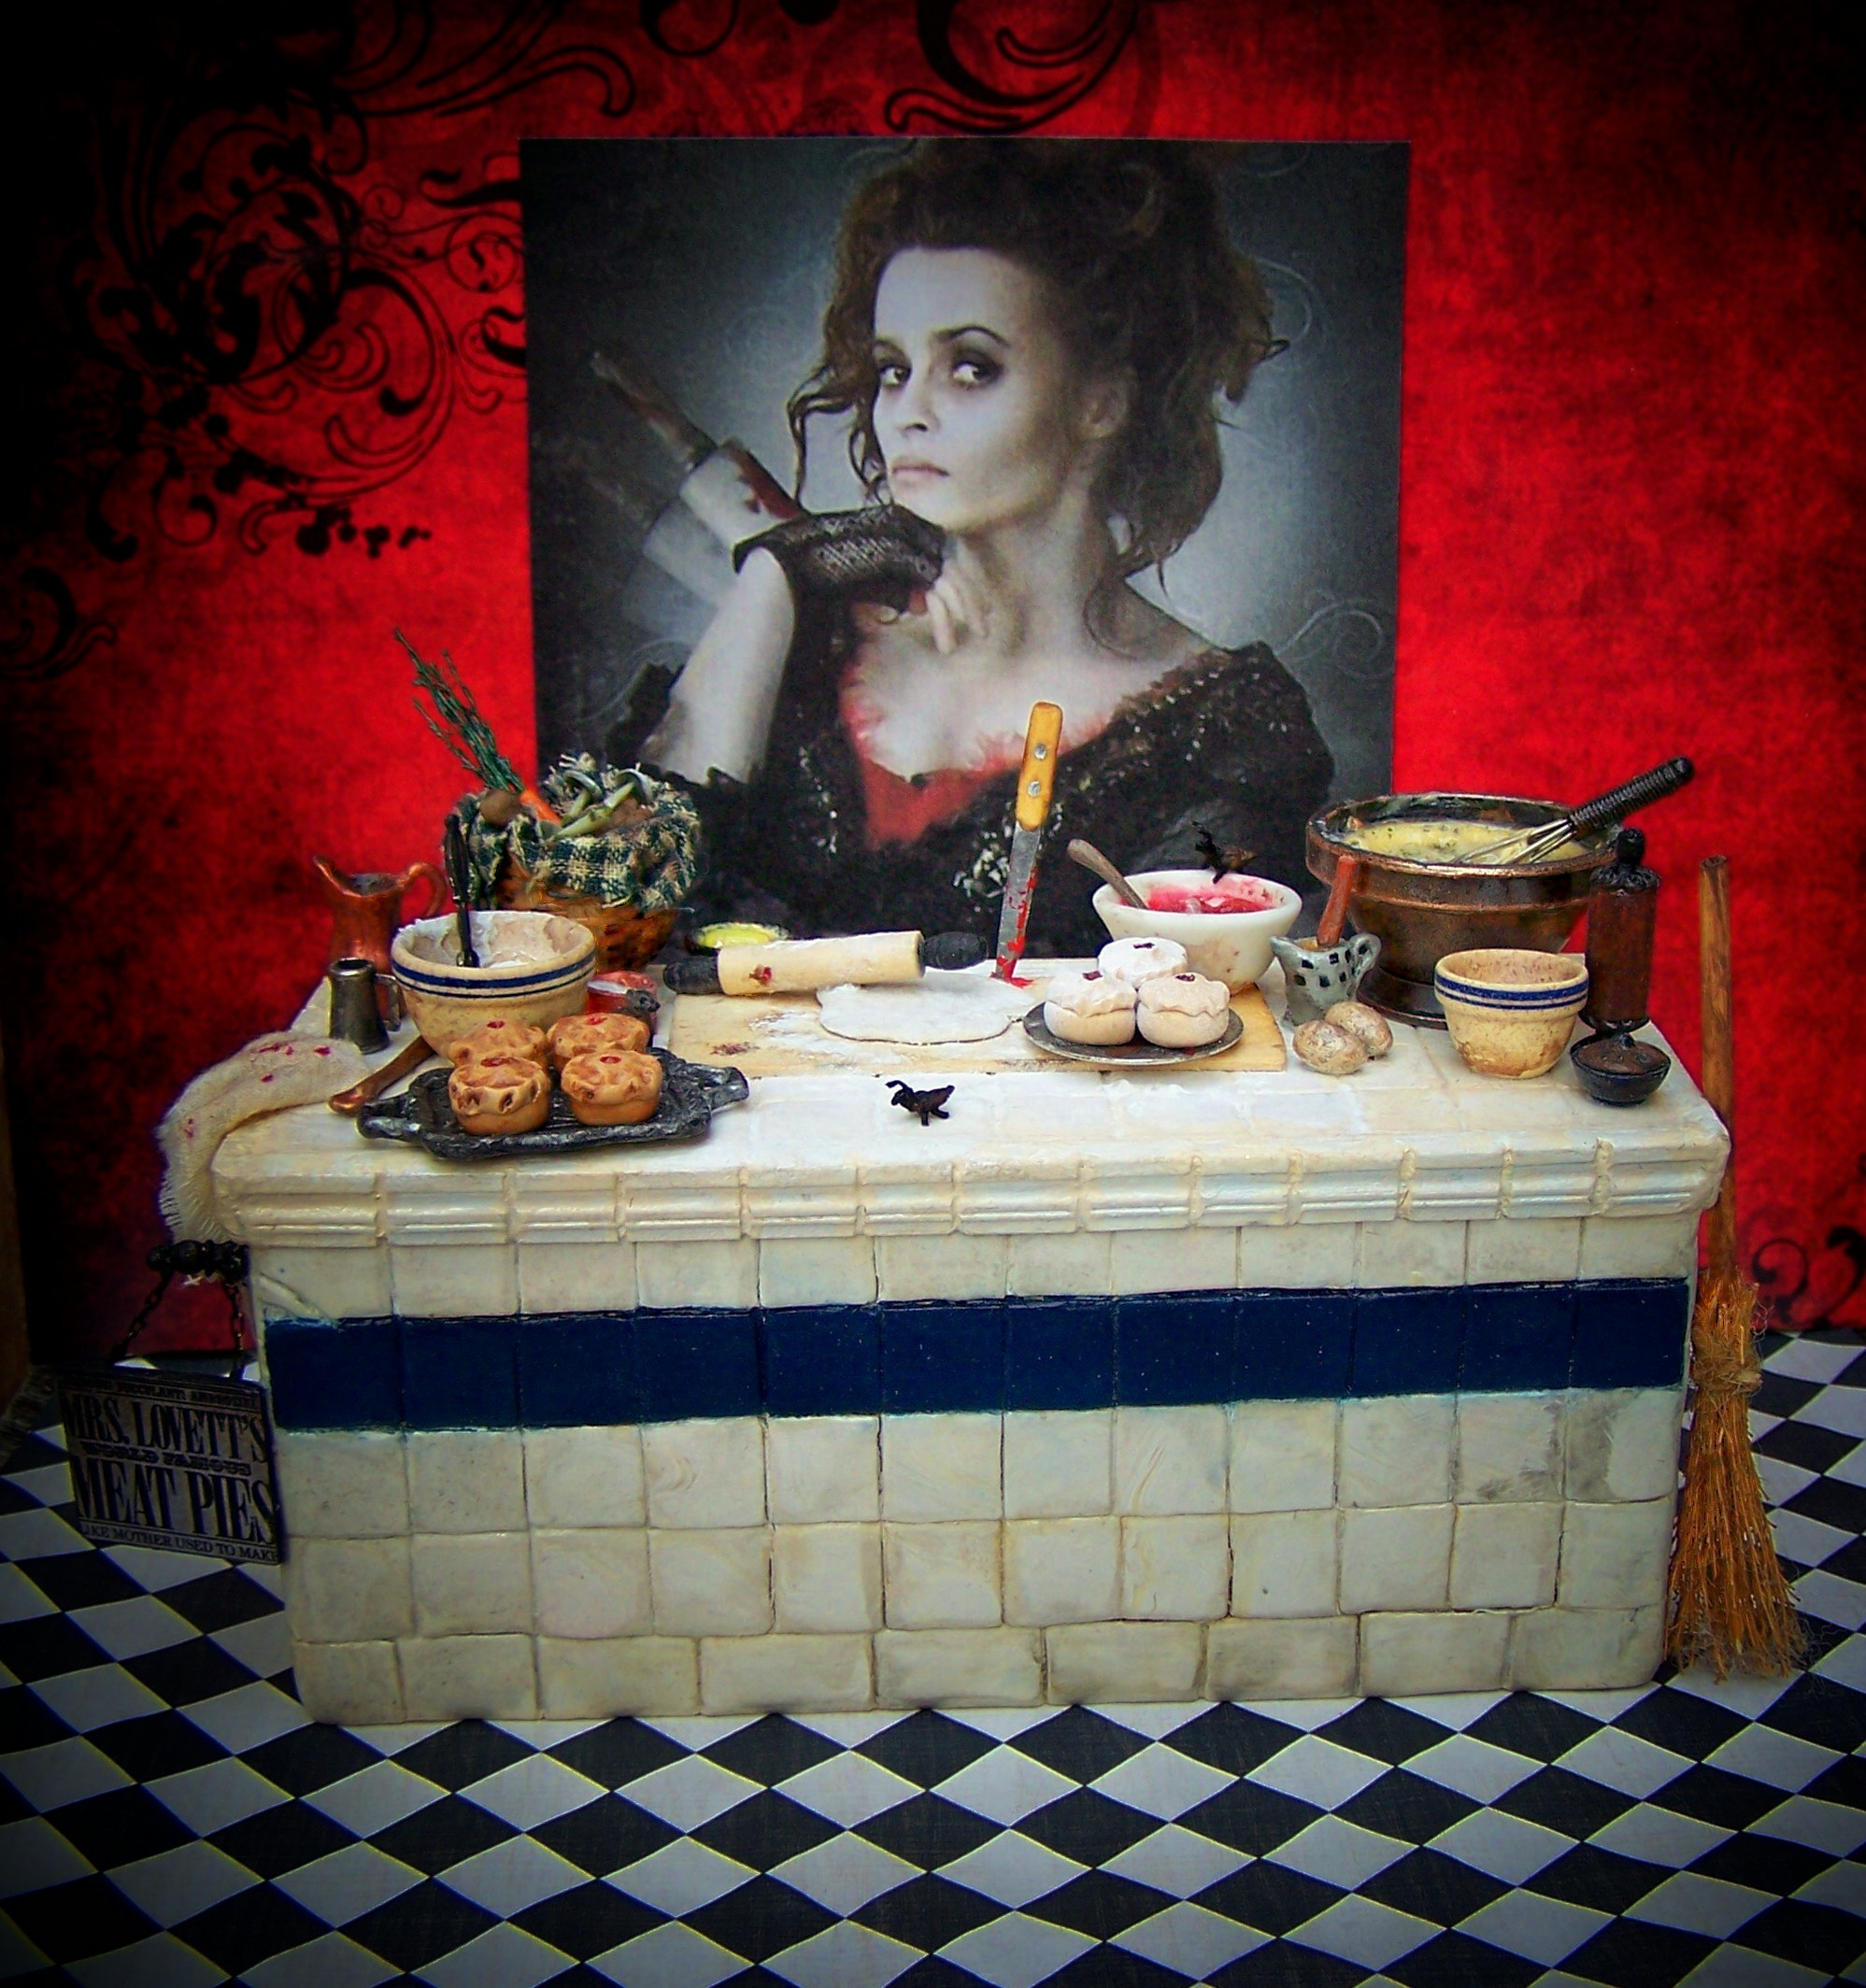 19th 日 Miniatures version of Mrs. Lovett's Meat Pie Counter